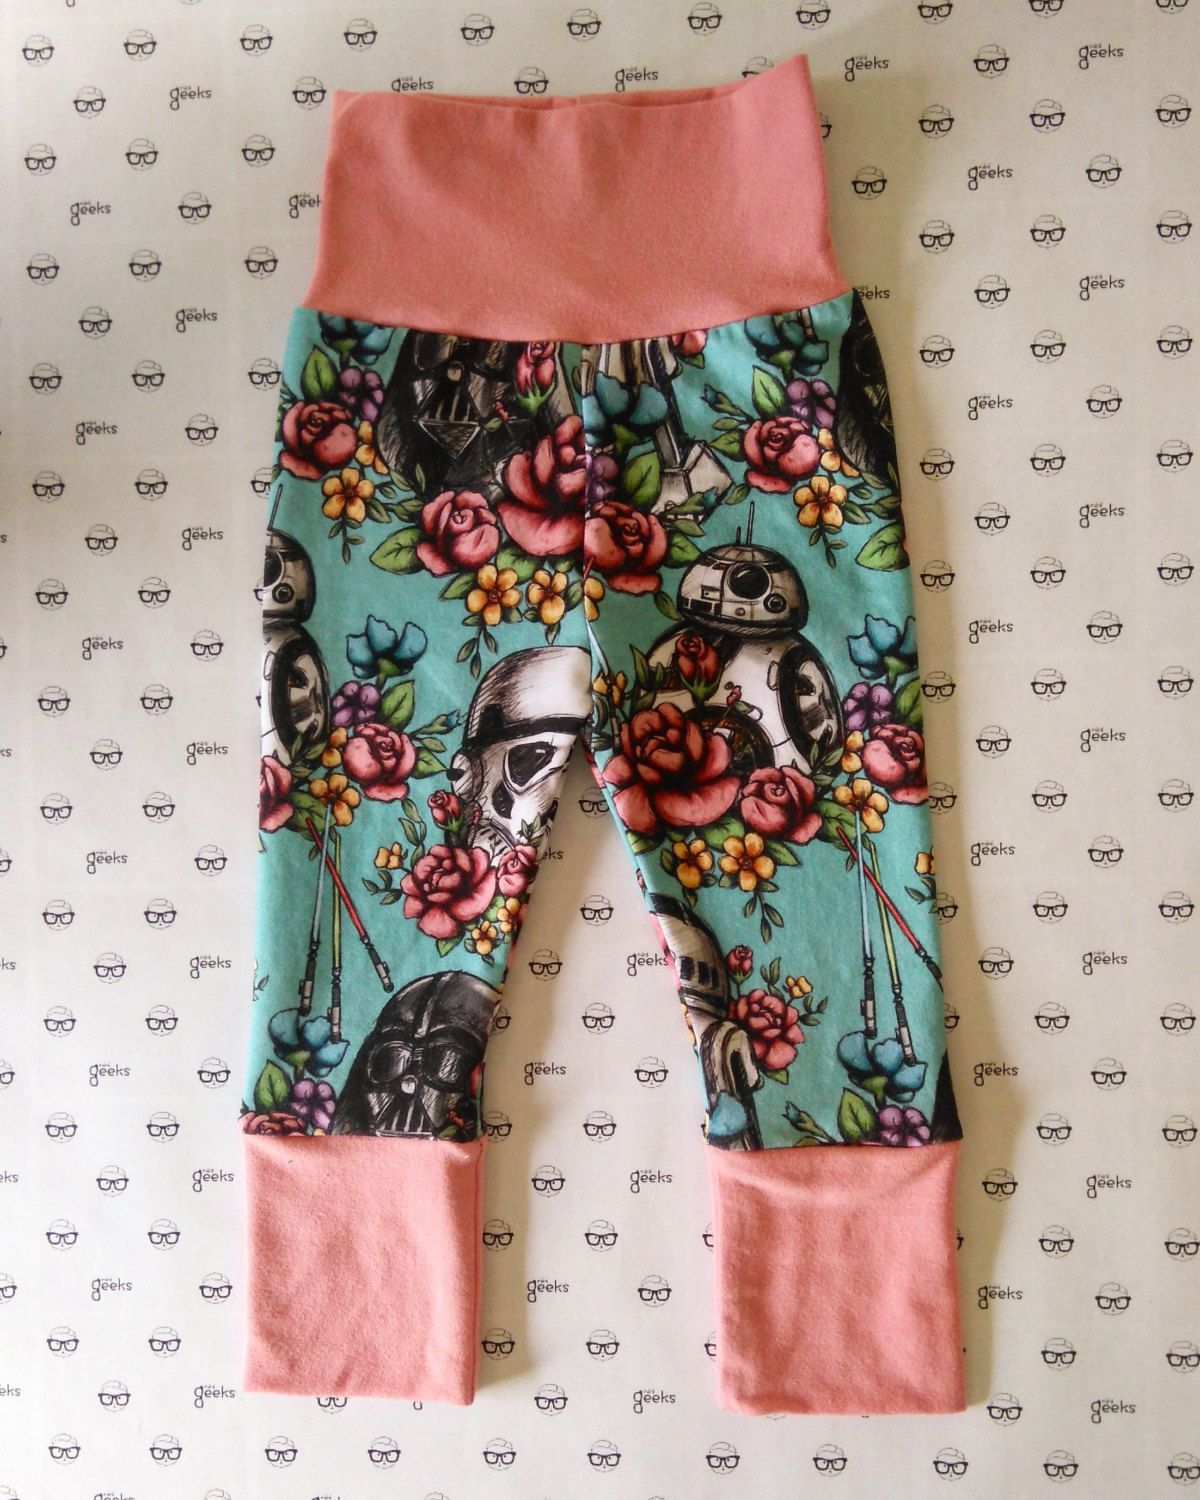 d4c68ecd3 Grow with me pants, baby yoga pants, baby leggings, Star Wars baby, floral  baby girl, jedi princess, girl star wars, star wars bb8 by MiniGeeks on Etsy